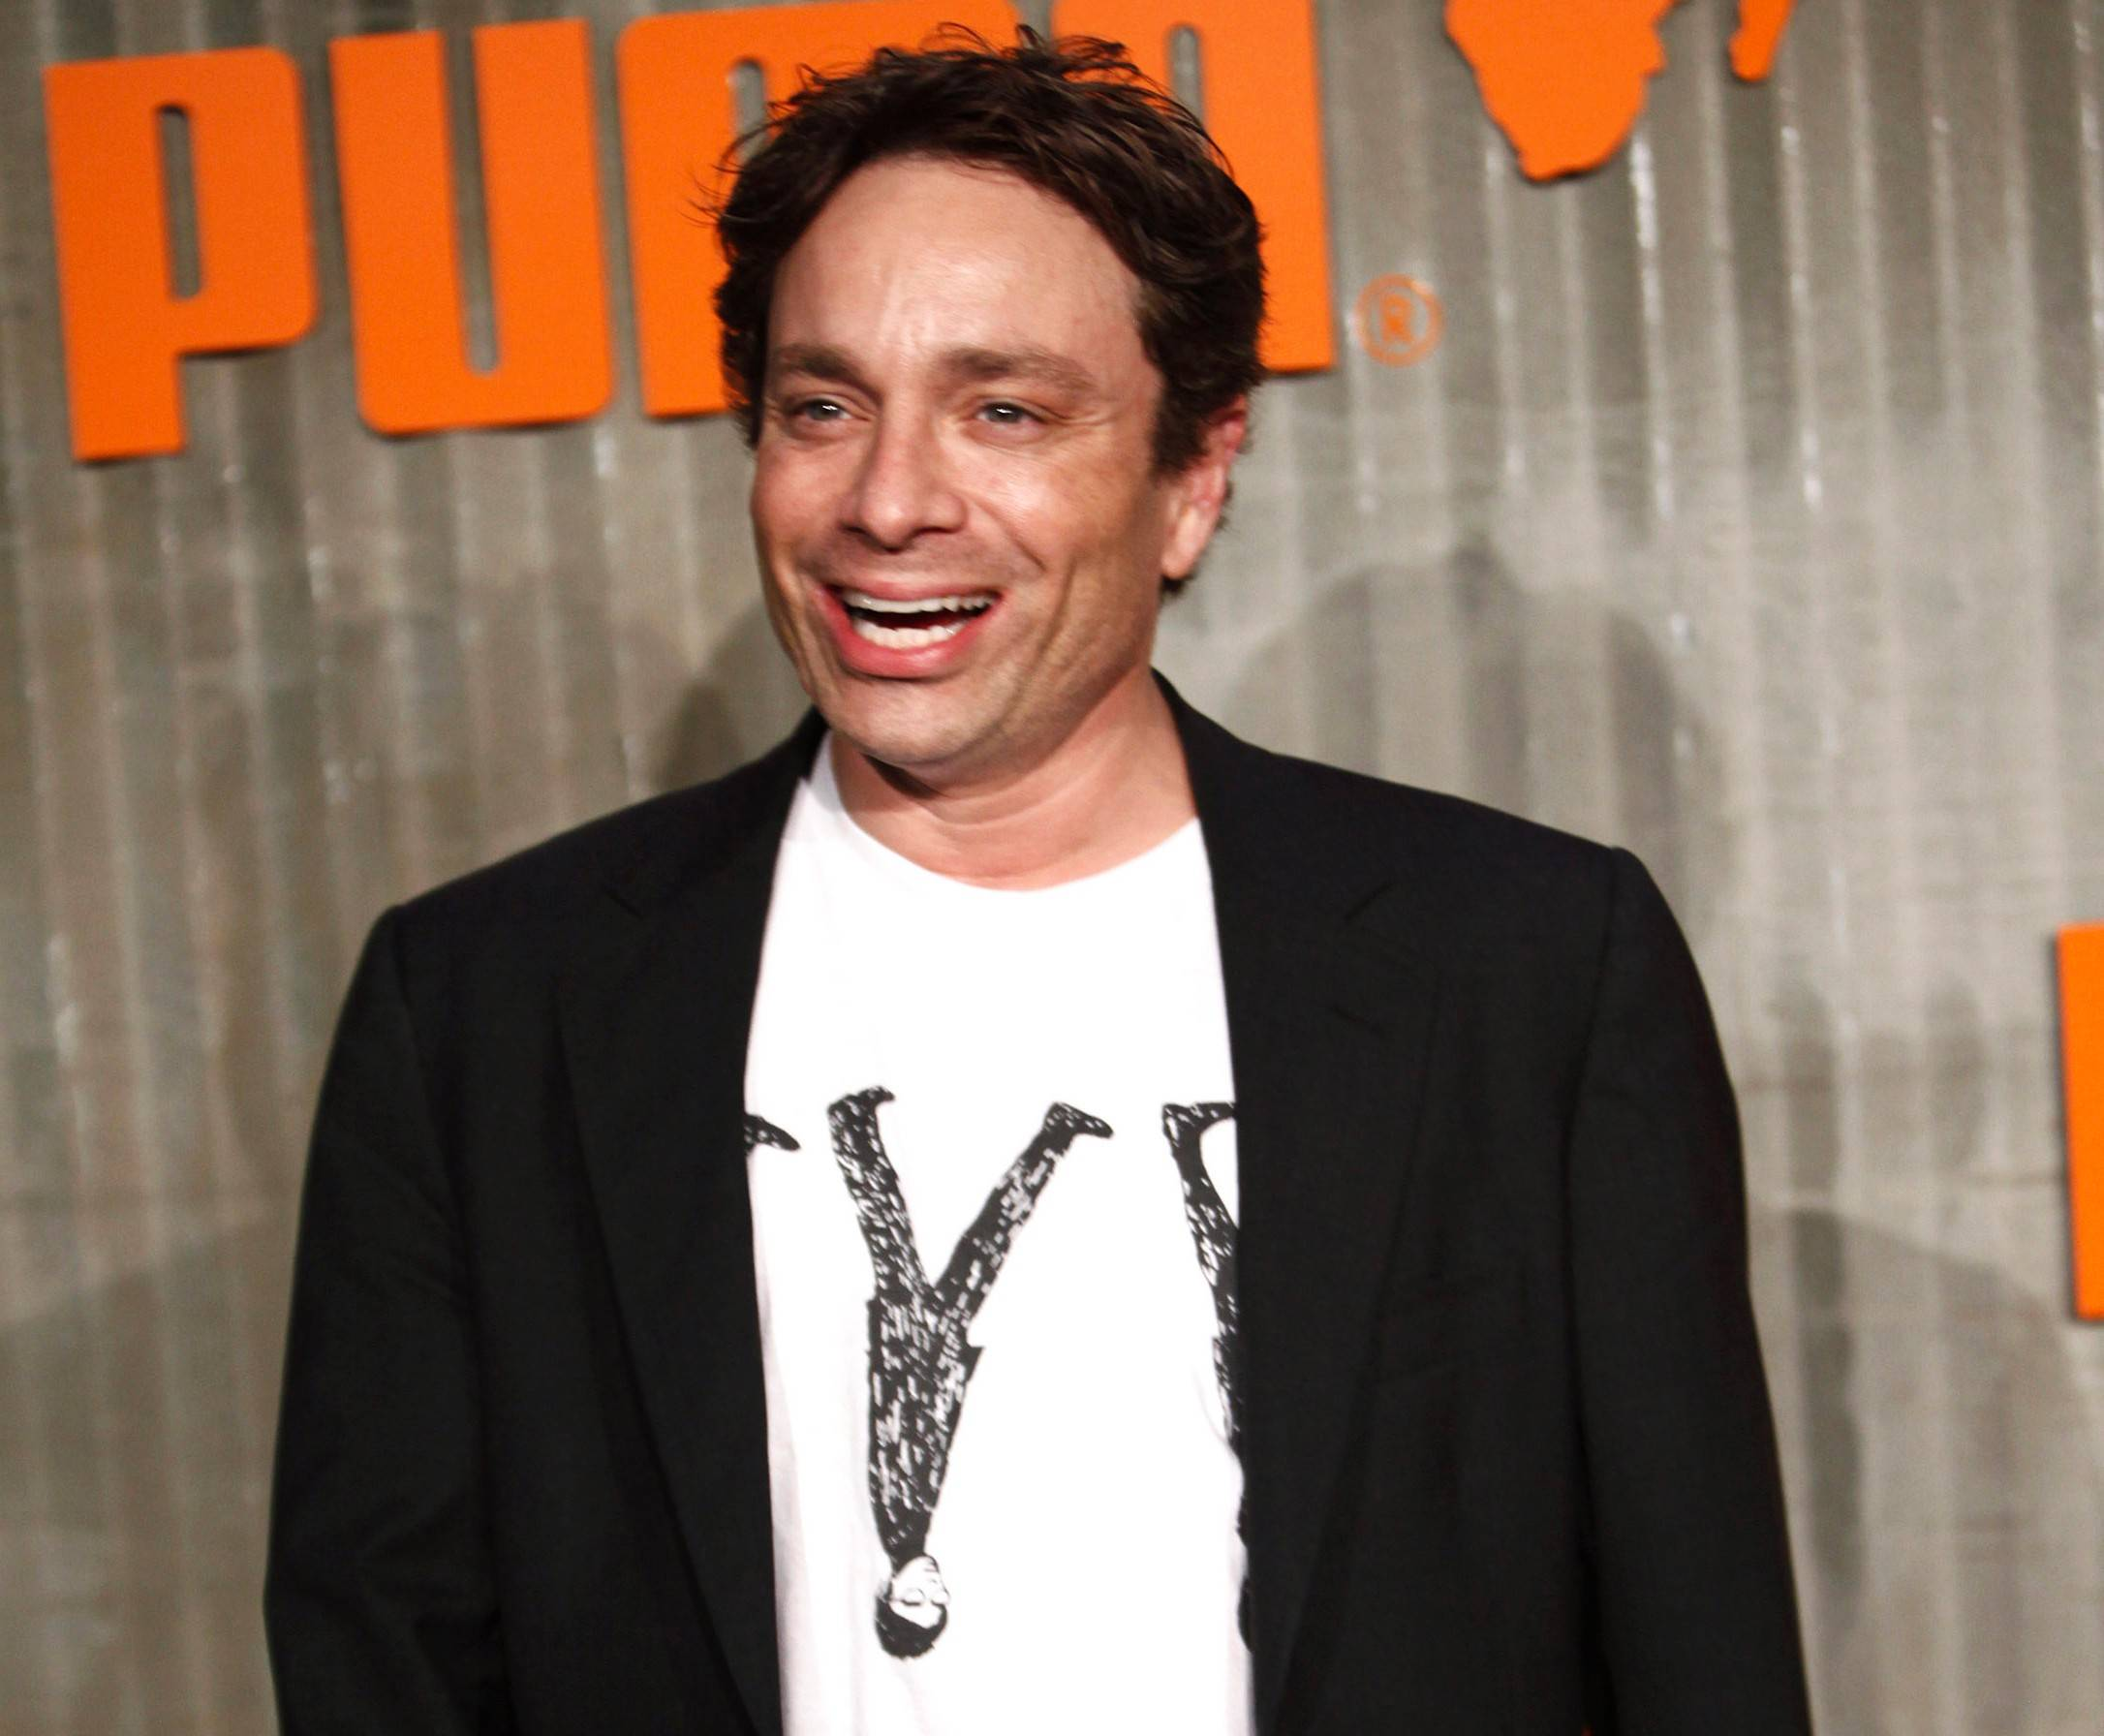 Audio released by the California Highway Patrol on Wednesday includes two motorists who describe Chris Kattan's driving and the aftermath of his collision with a road crew on a Southern California freeway during the early morning Monday.